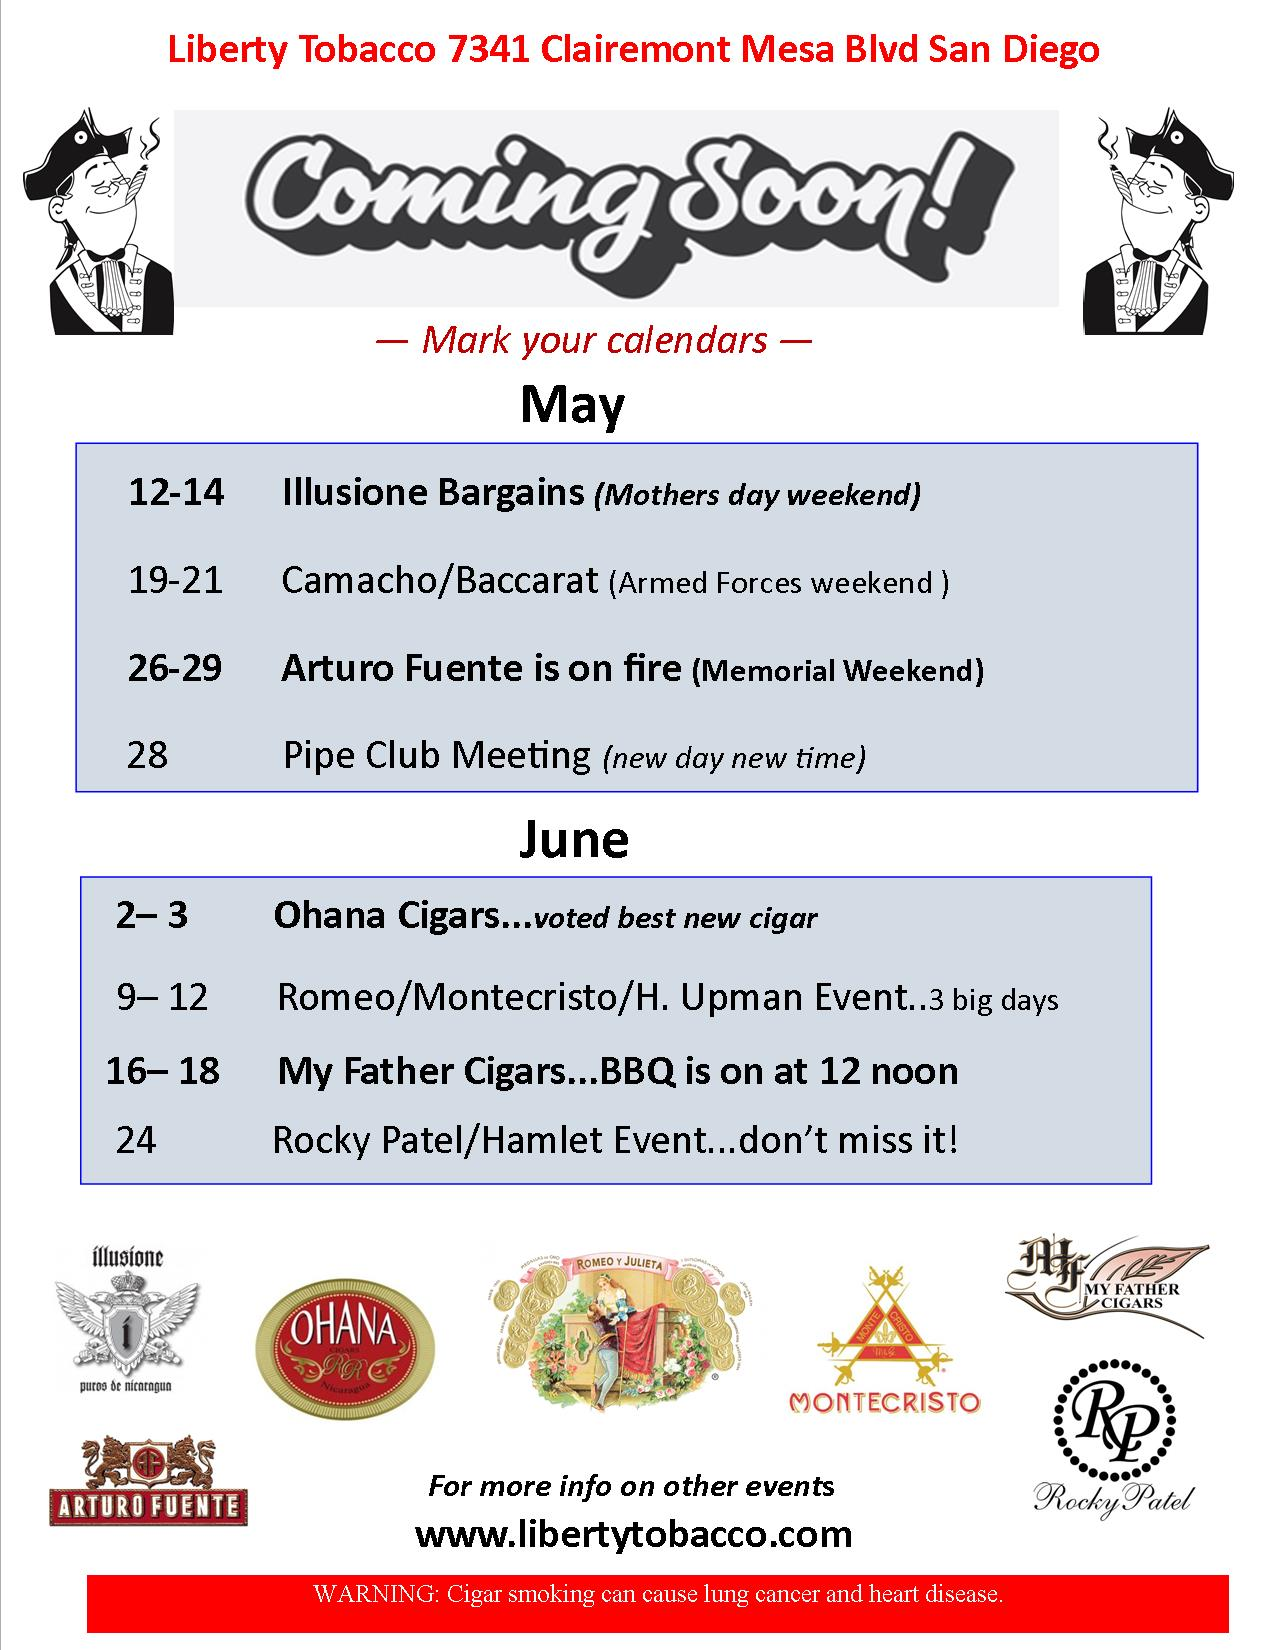 Save the date!!! Lots of great events here at Liberty Tobacco